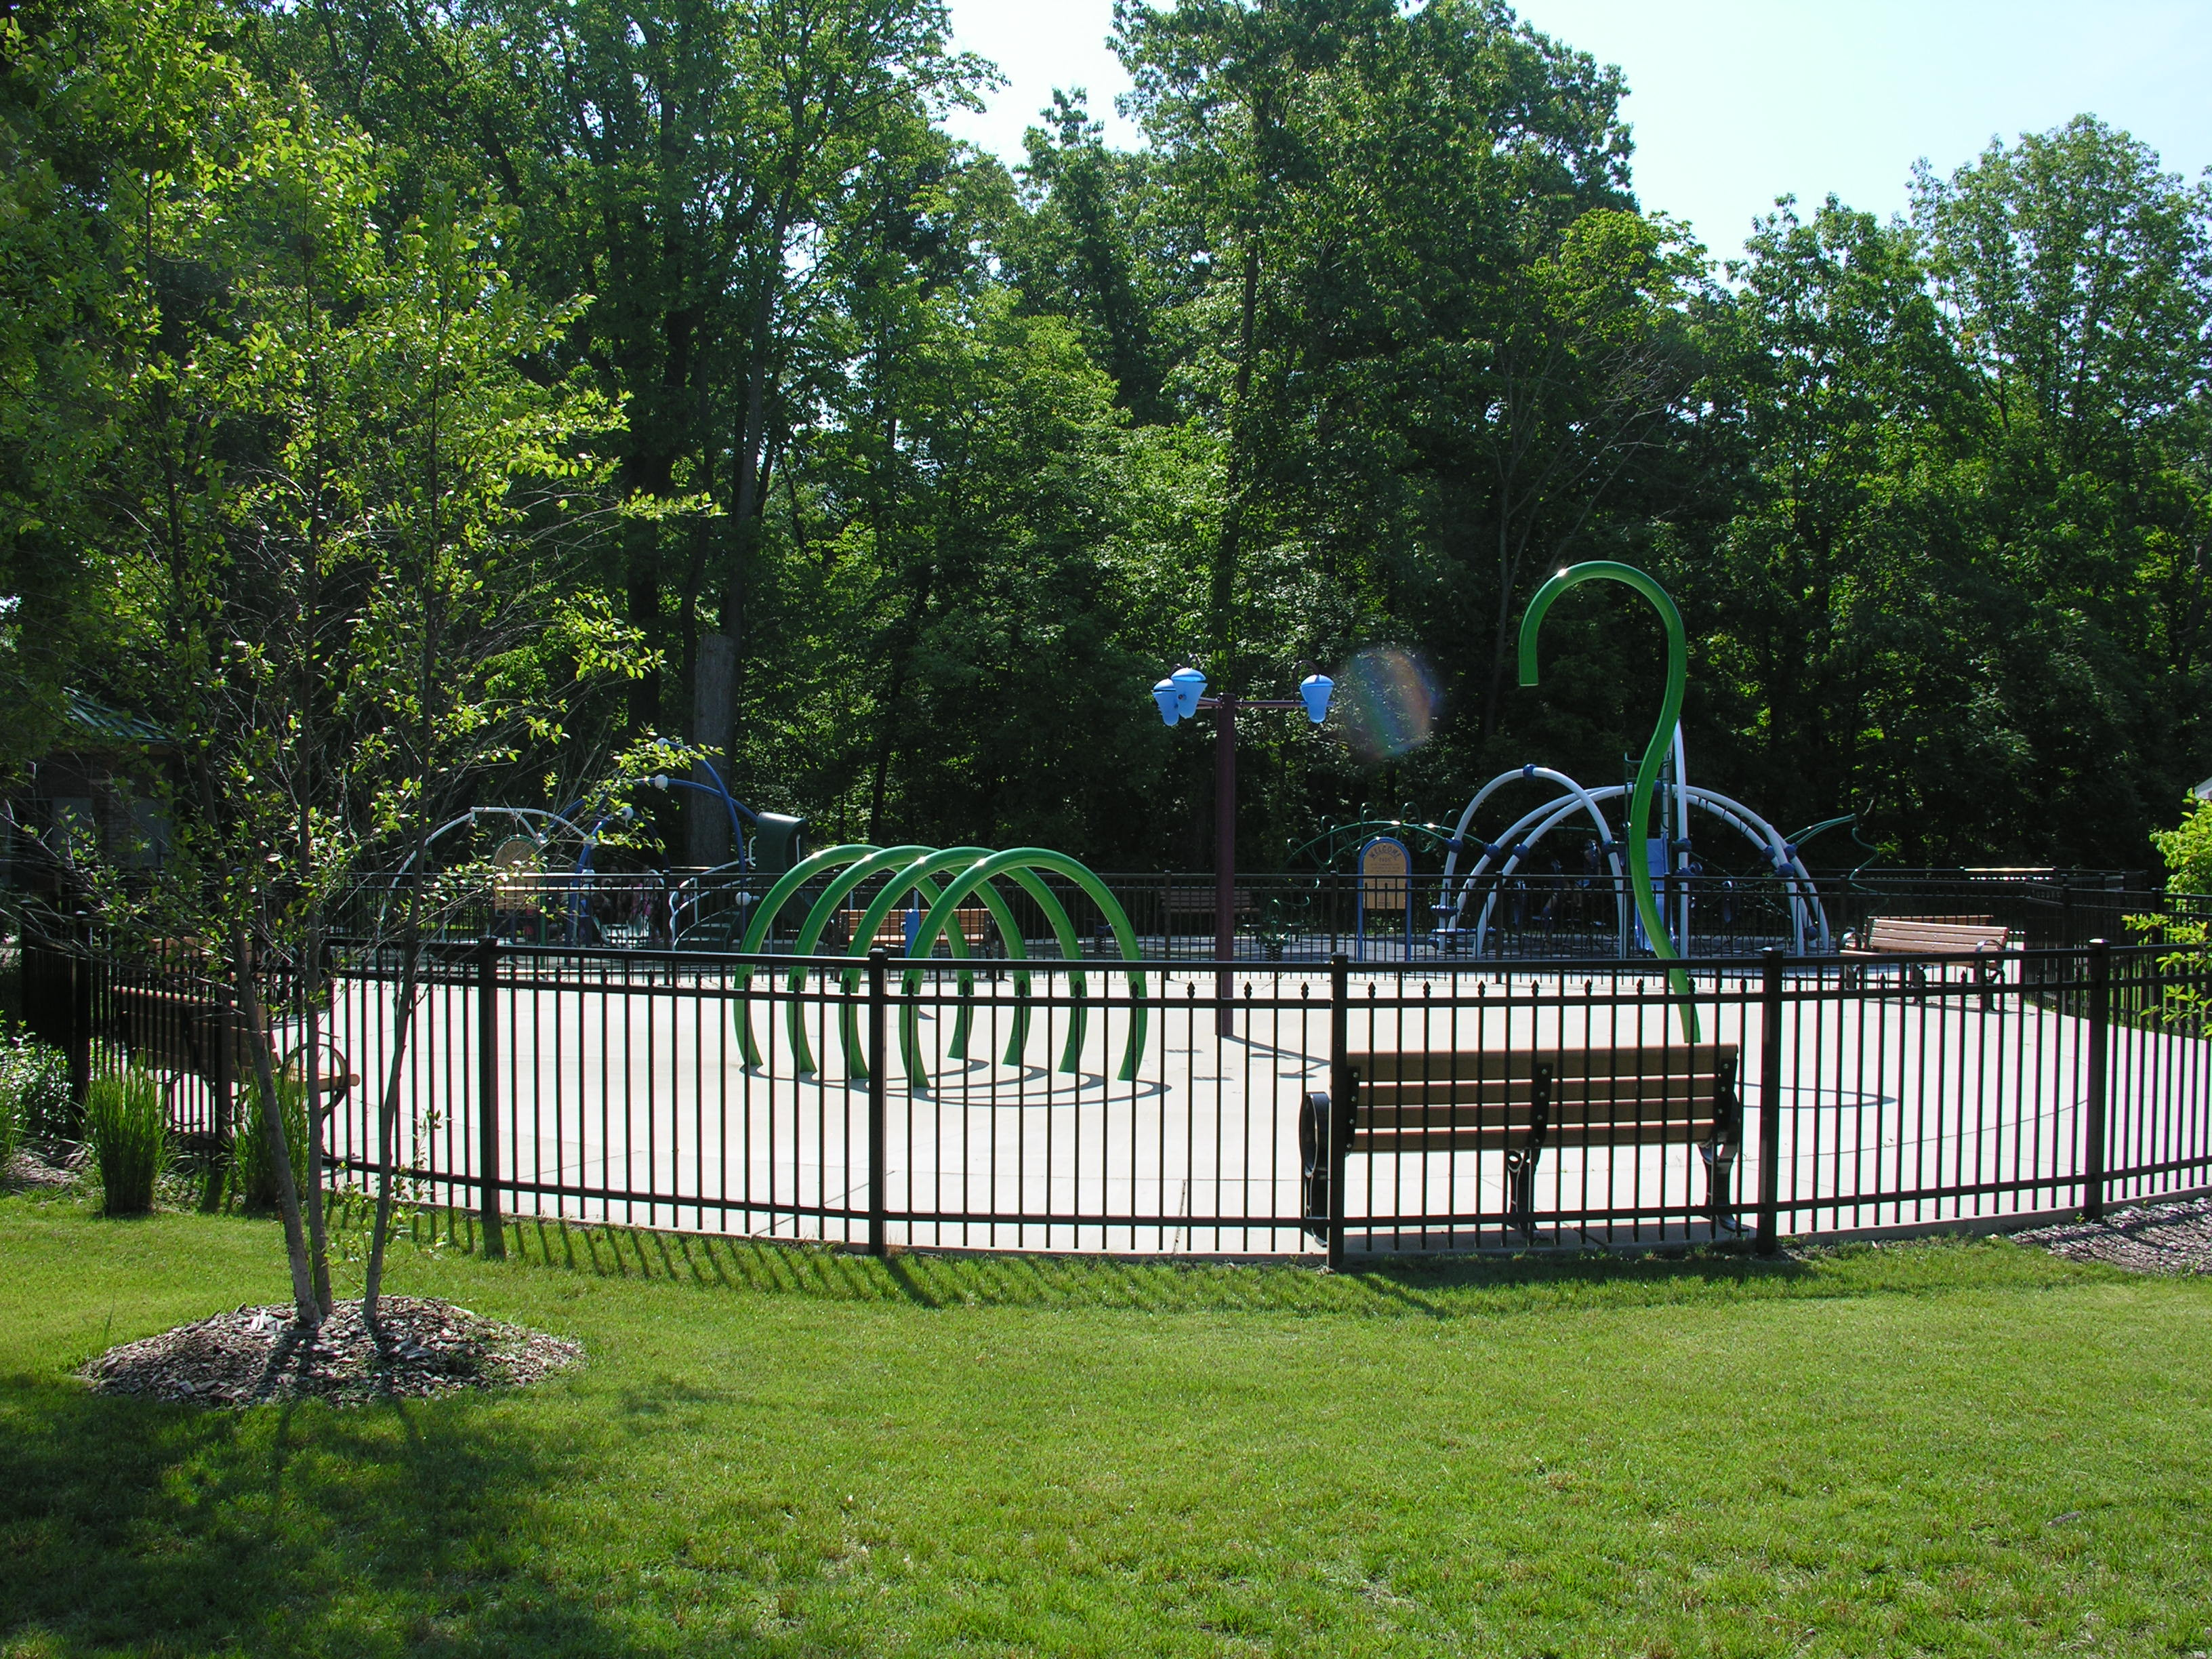 Michigan-Spraypark-flint